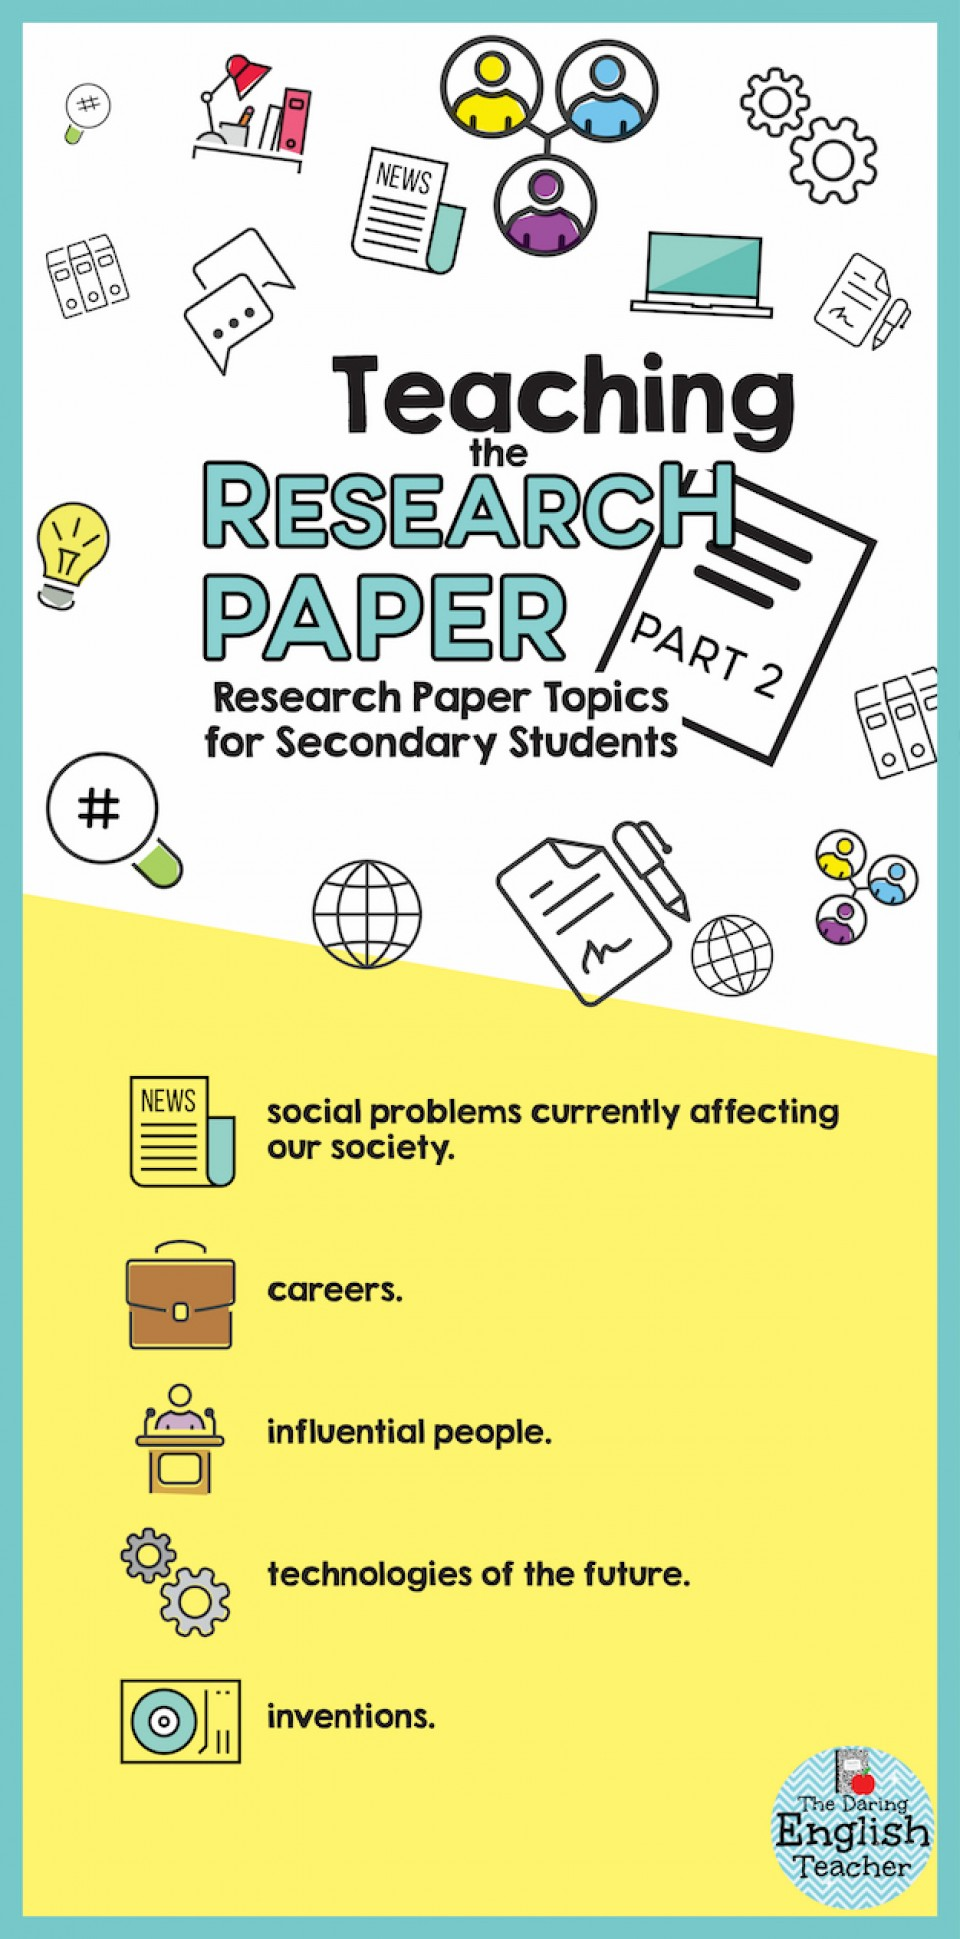 020 Infographic2bp22b2 Research Paper Topic For Unusual A Topics In Sociology On Frankenstein Education The Philippines 960